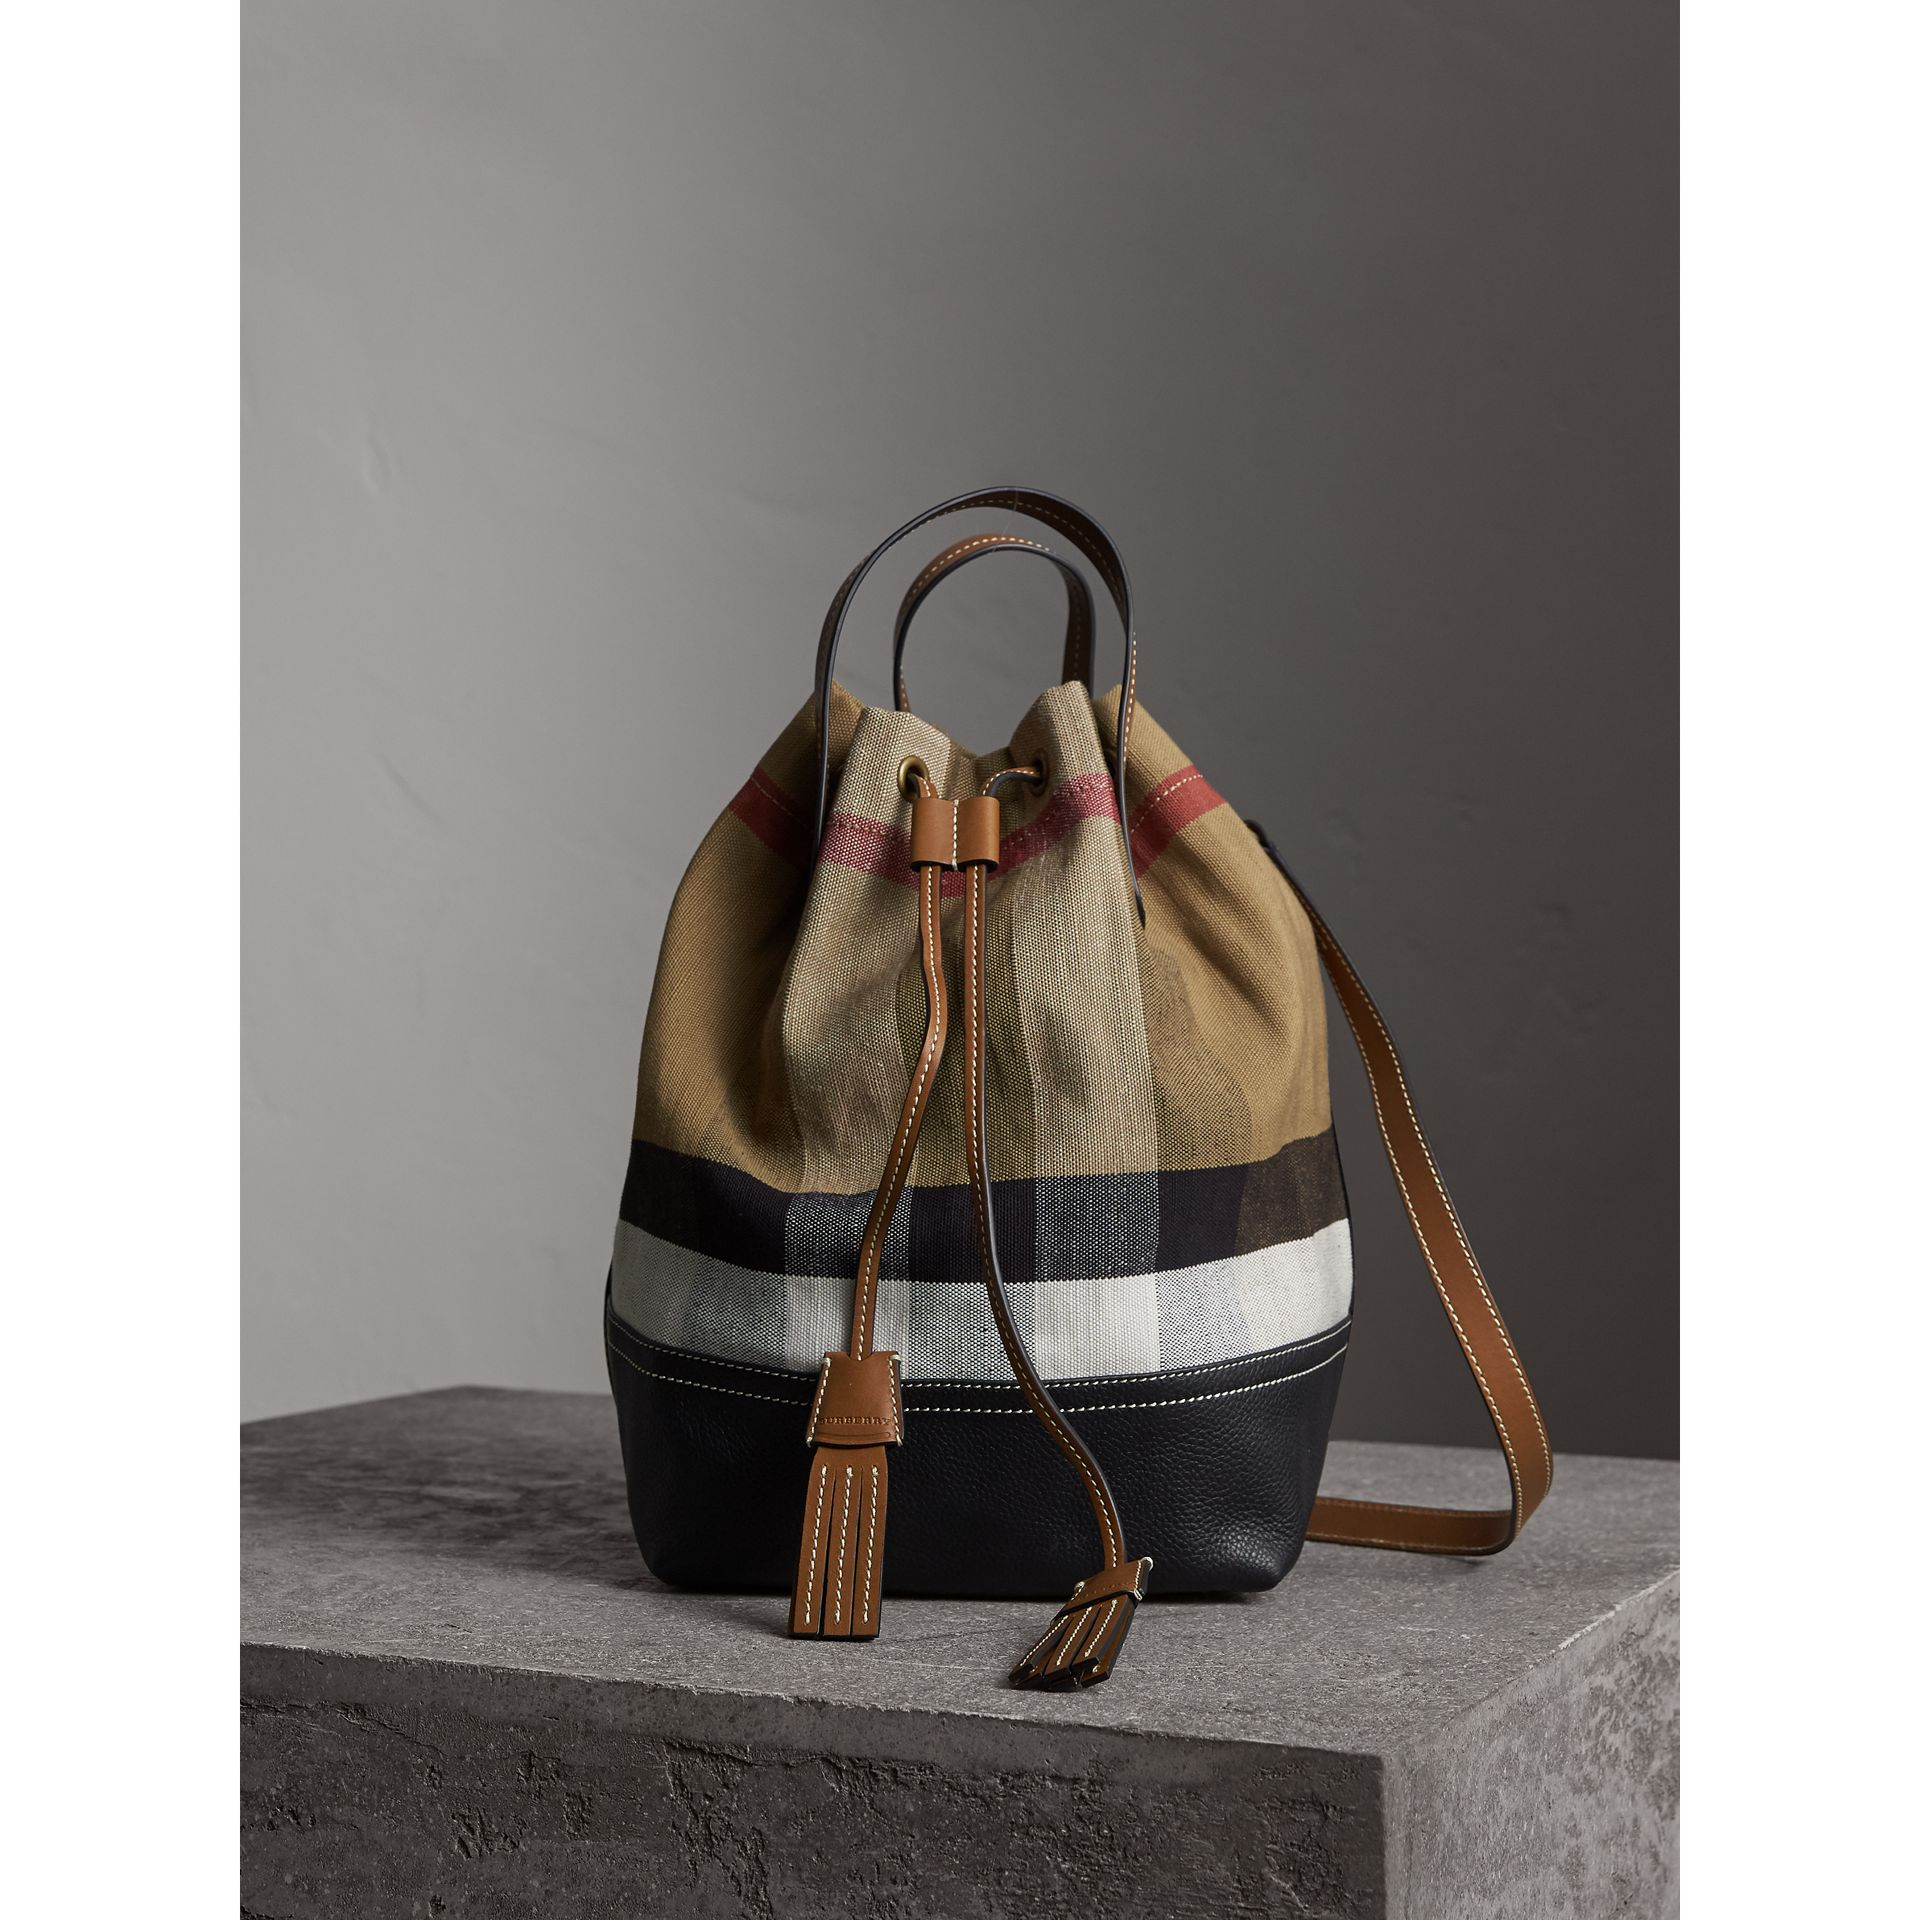 Medium Canvas Check Bucket Bag in Tan - Women | Burberry - gallery image 1